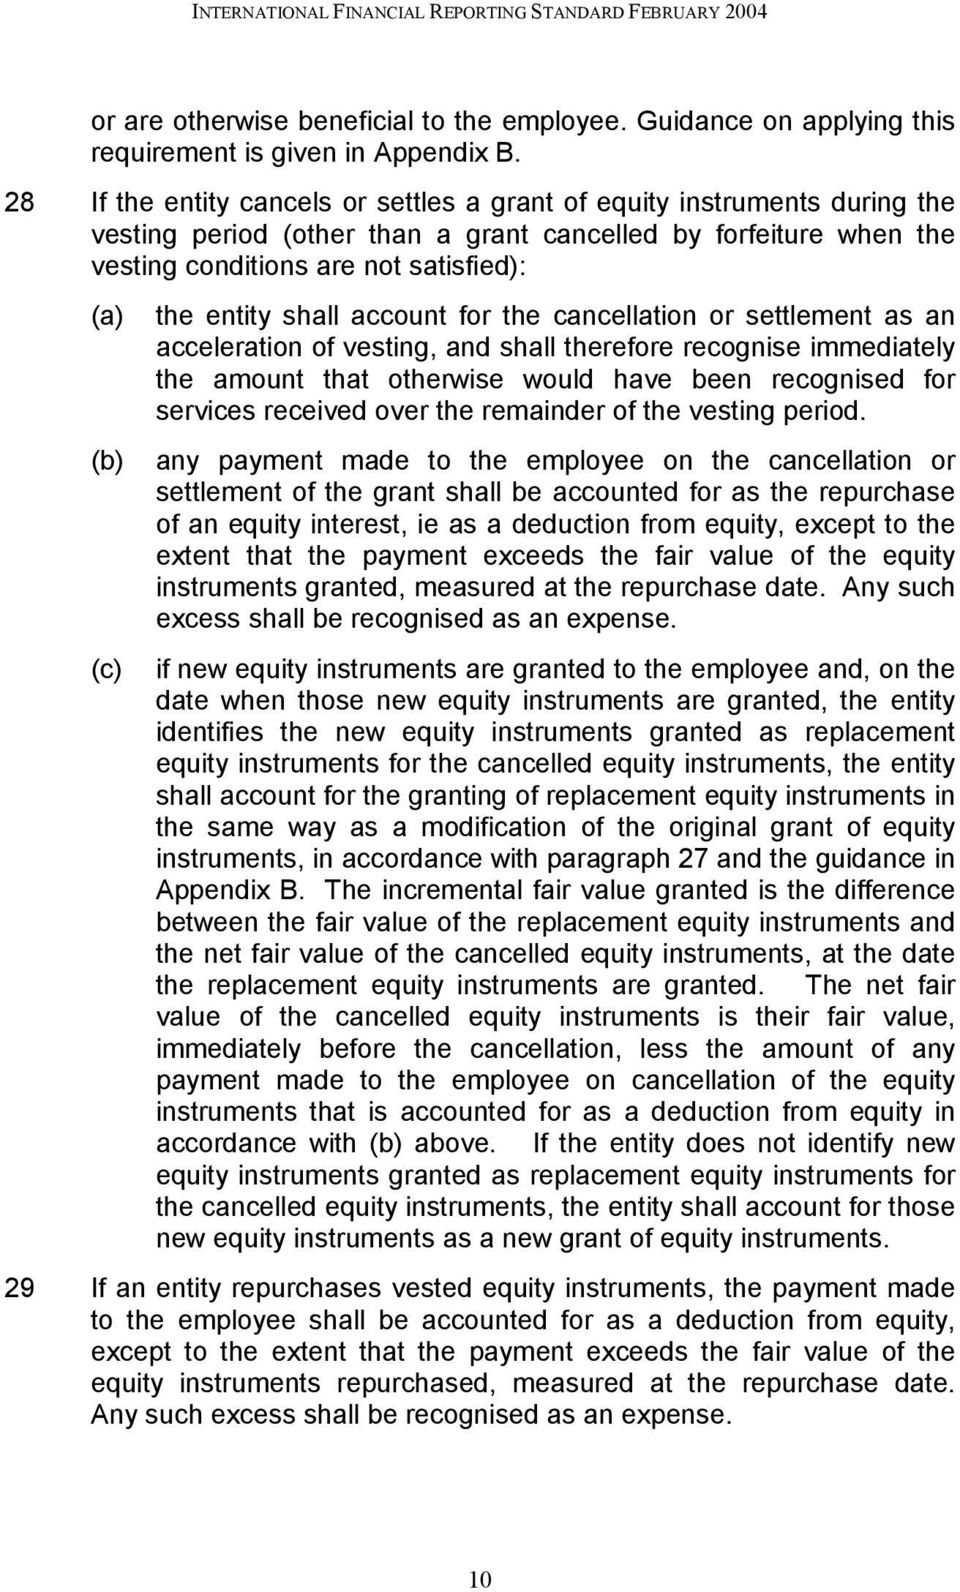 shall account for the cancellation or settlement as an acceleration of vesting, and shall therefore recognise immediately the amount that otherwise would have been recognised for services received